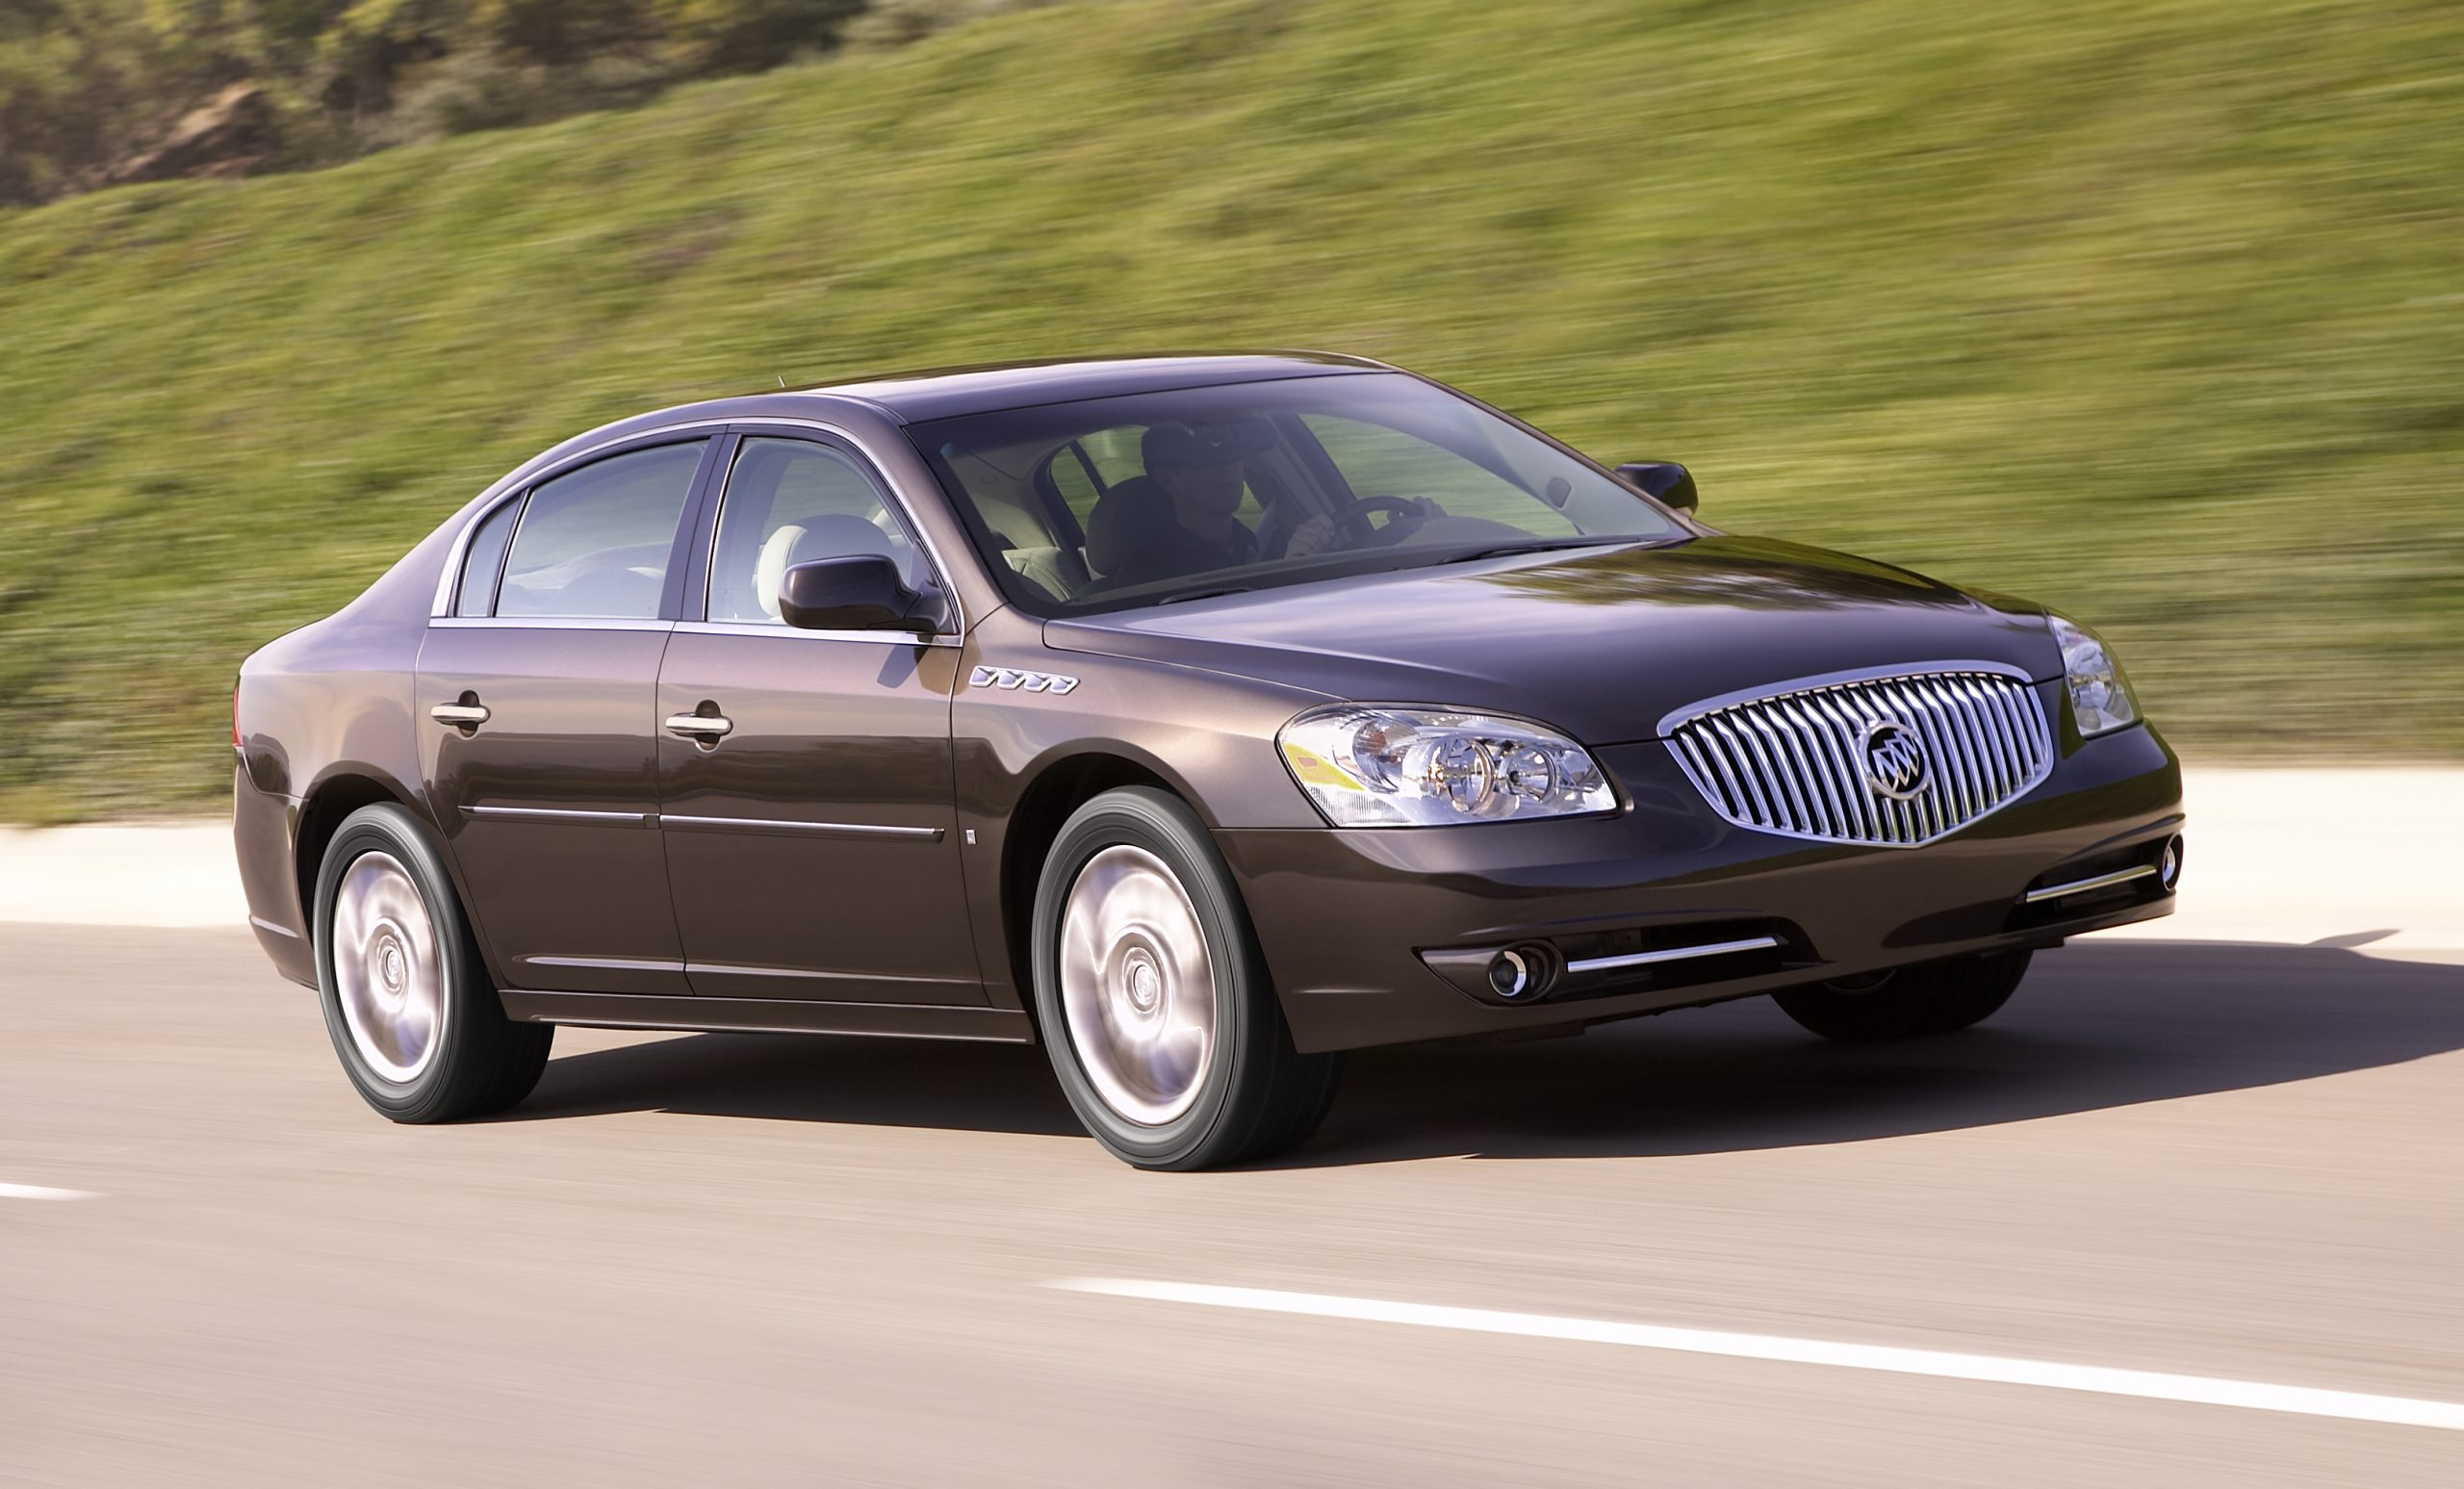 Are You Ready To Wave Goodbye To The Buick Lucerne? | Gm 2022 Buick Lucerne Reliability, Wheels, Grill